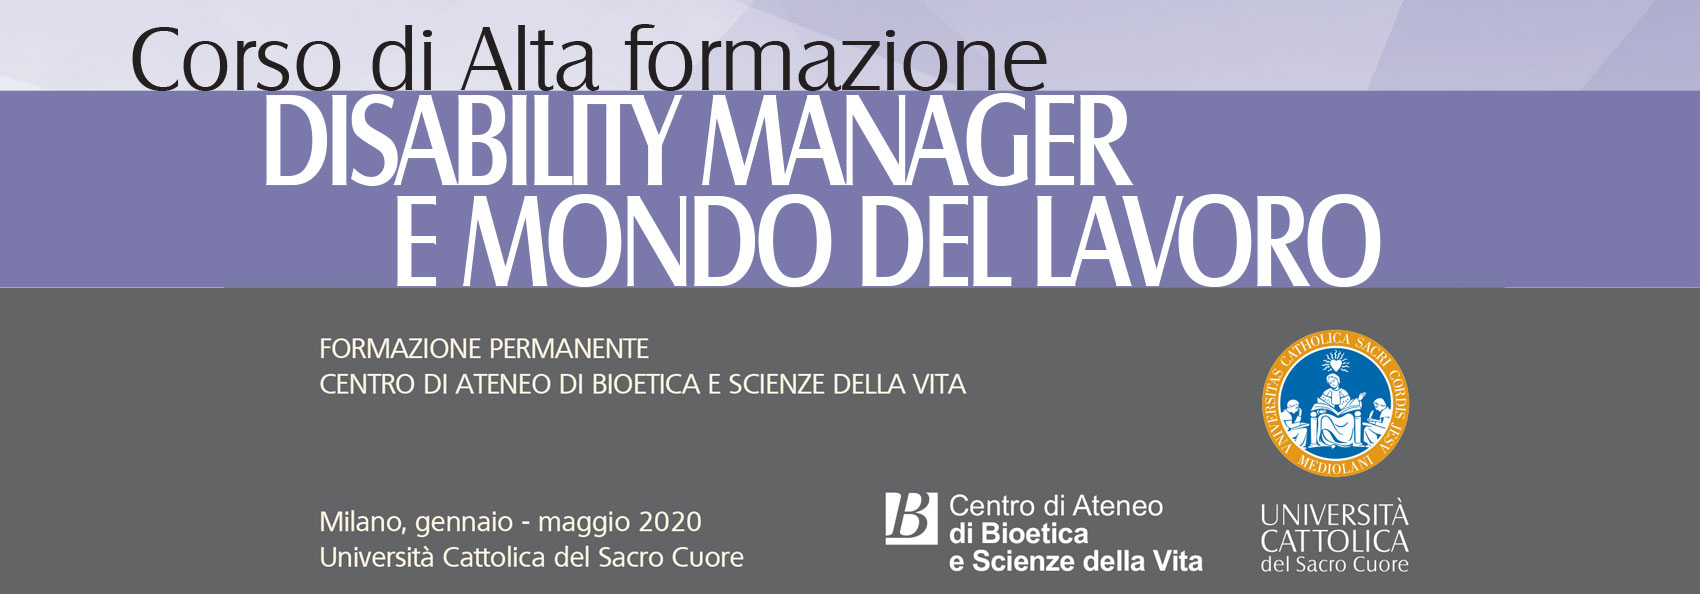 Diability manager Uni Cattolica